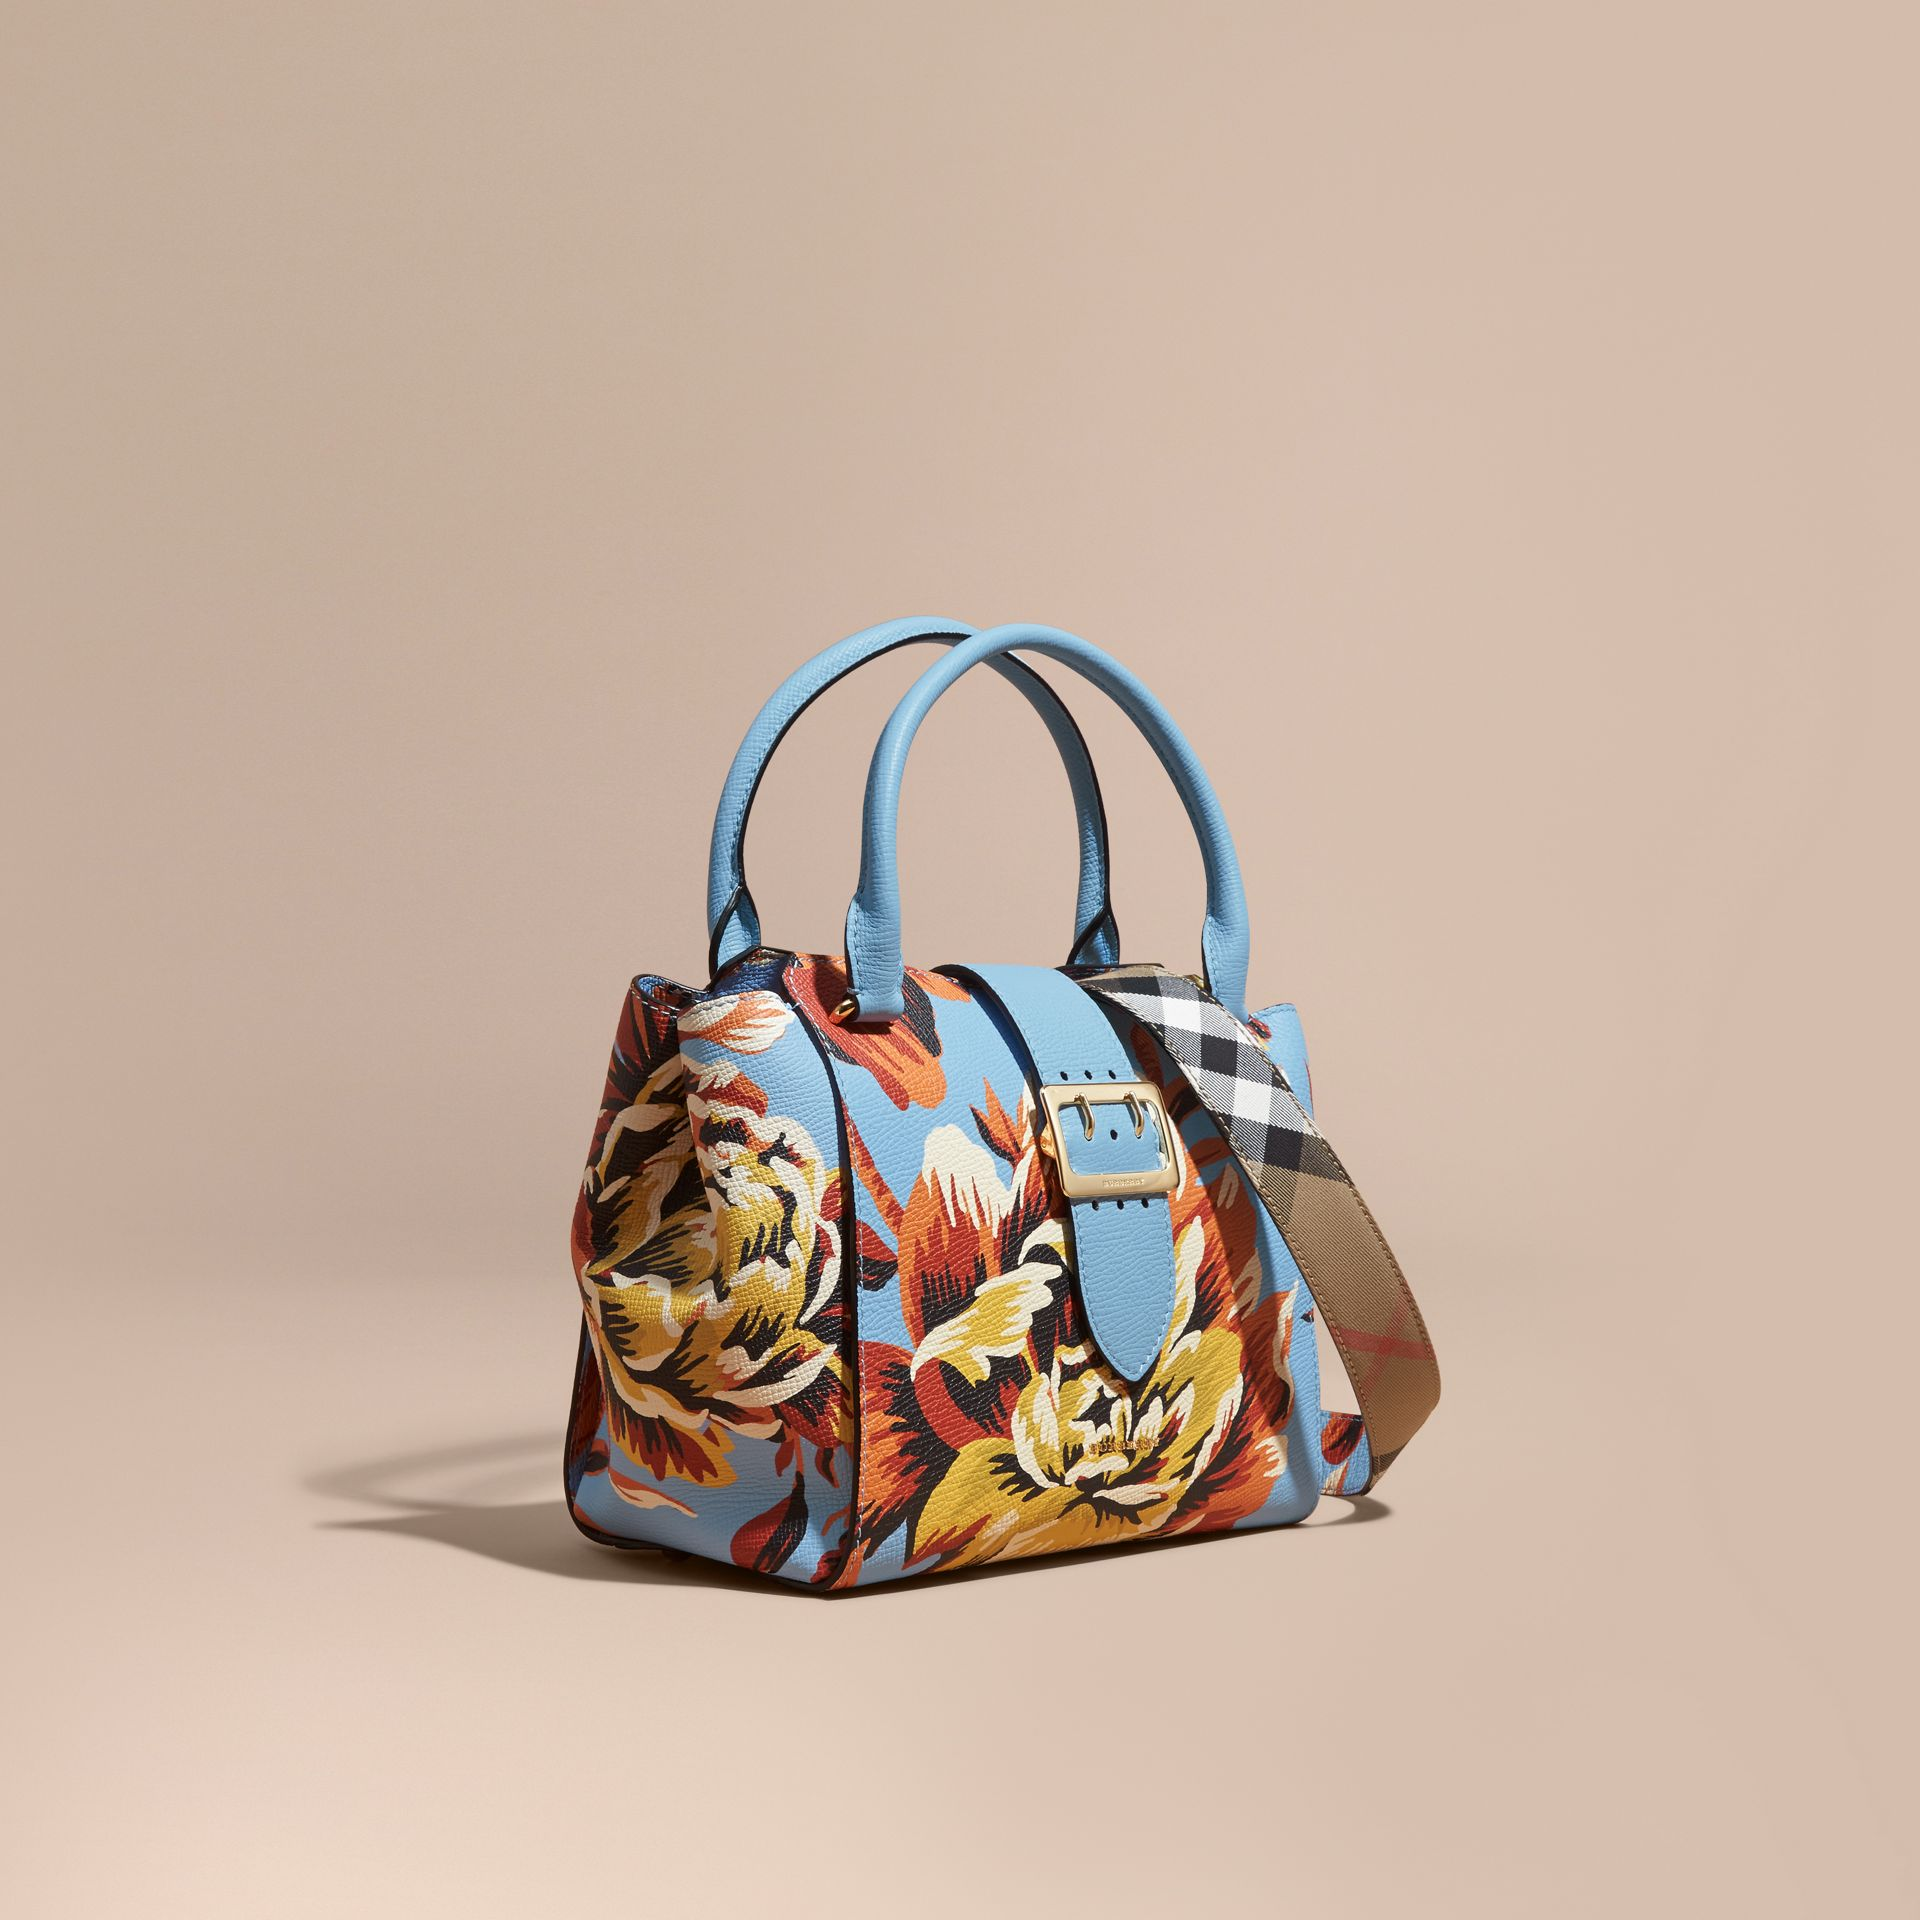 Pale blue/vibrant orange The Medium Buckle Tote in Peony Rose Print Leather Pale Blue/vibrant Orange - gallery image 1